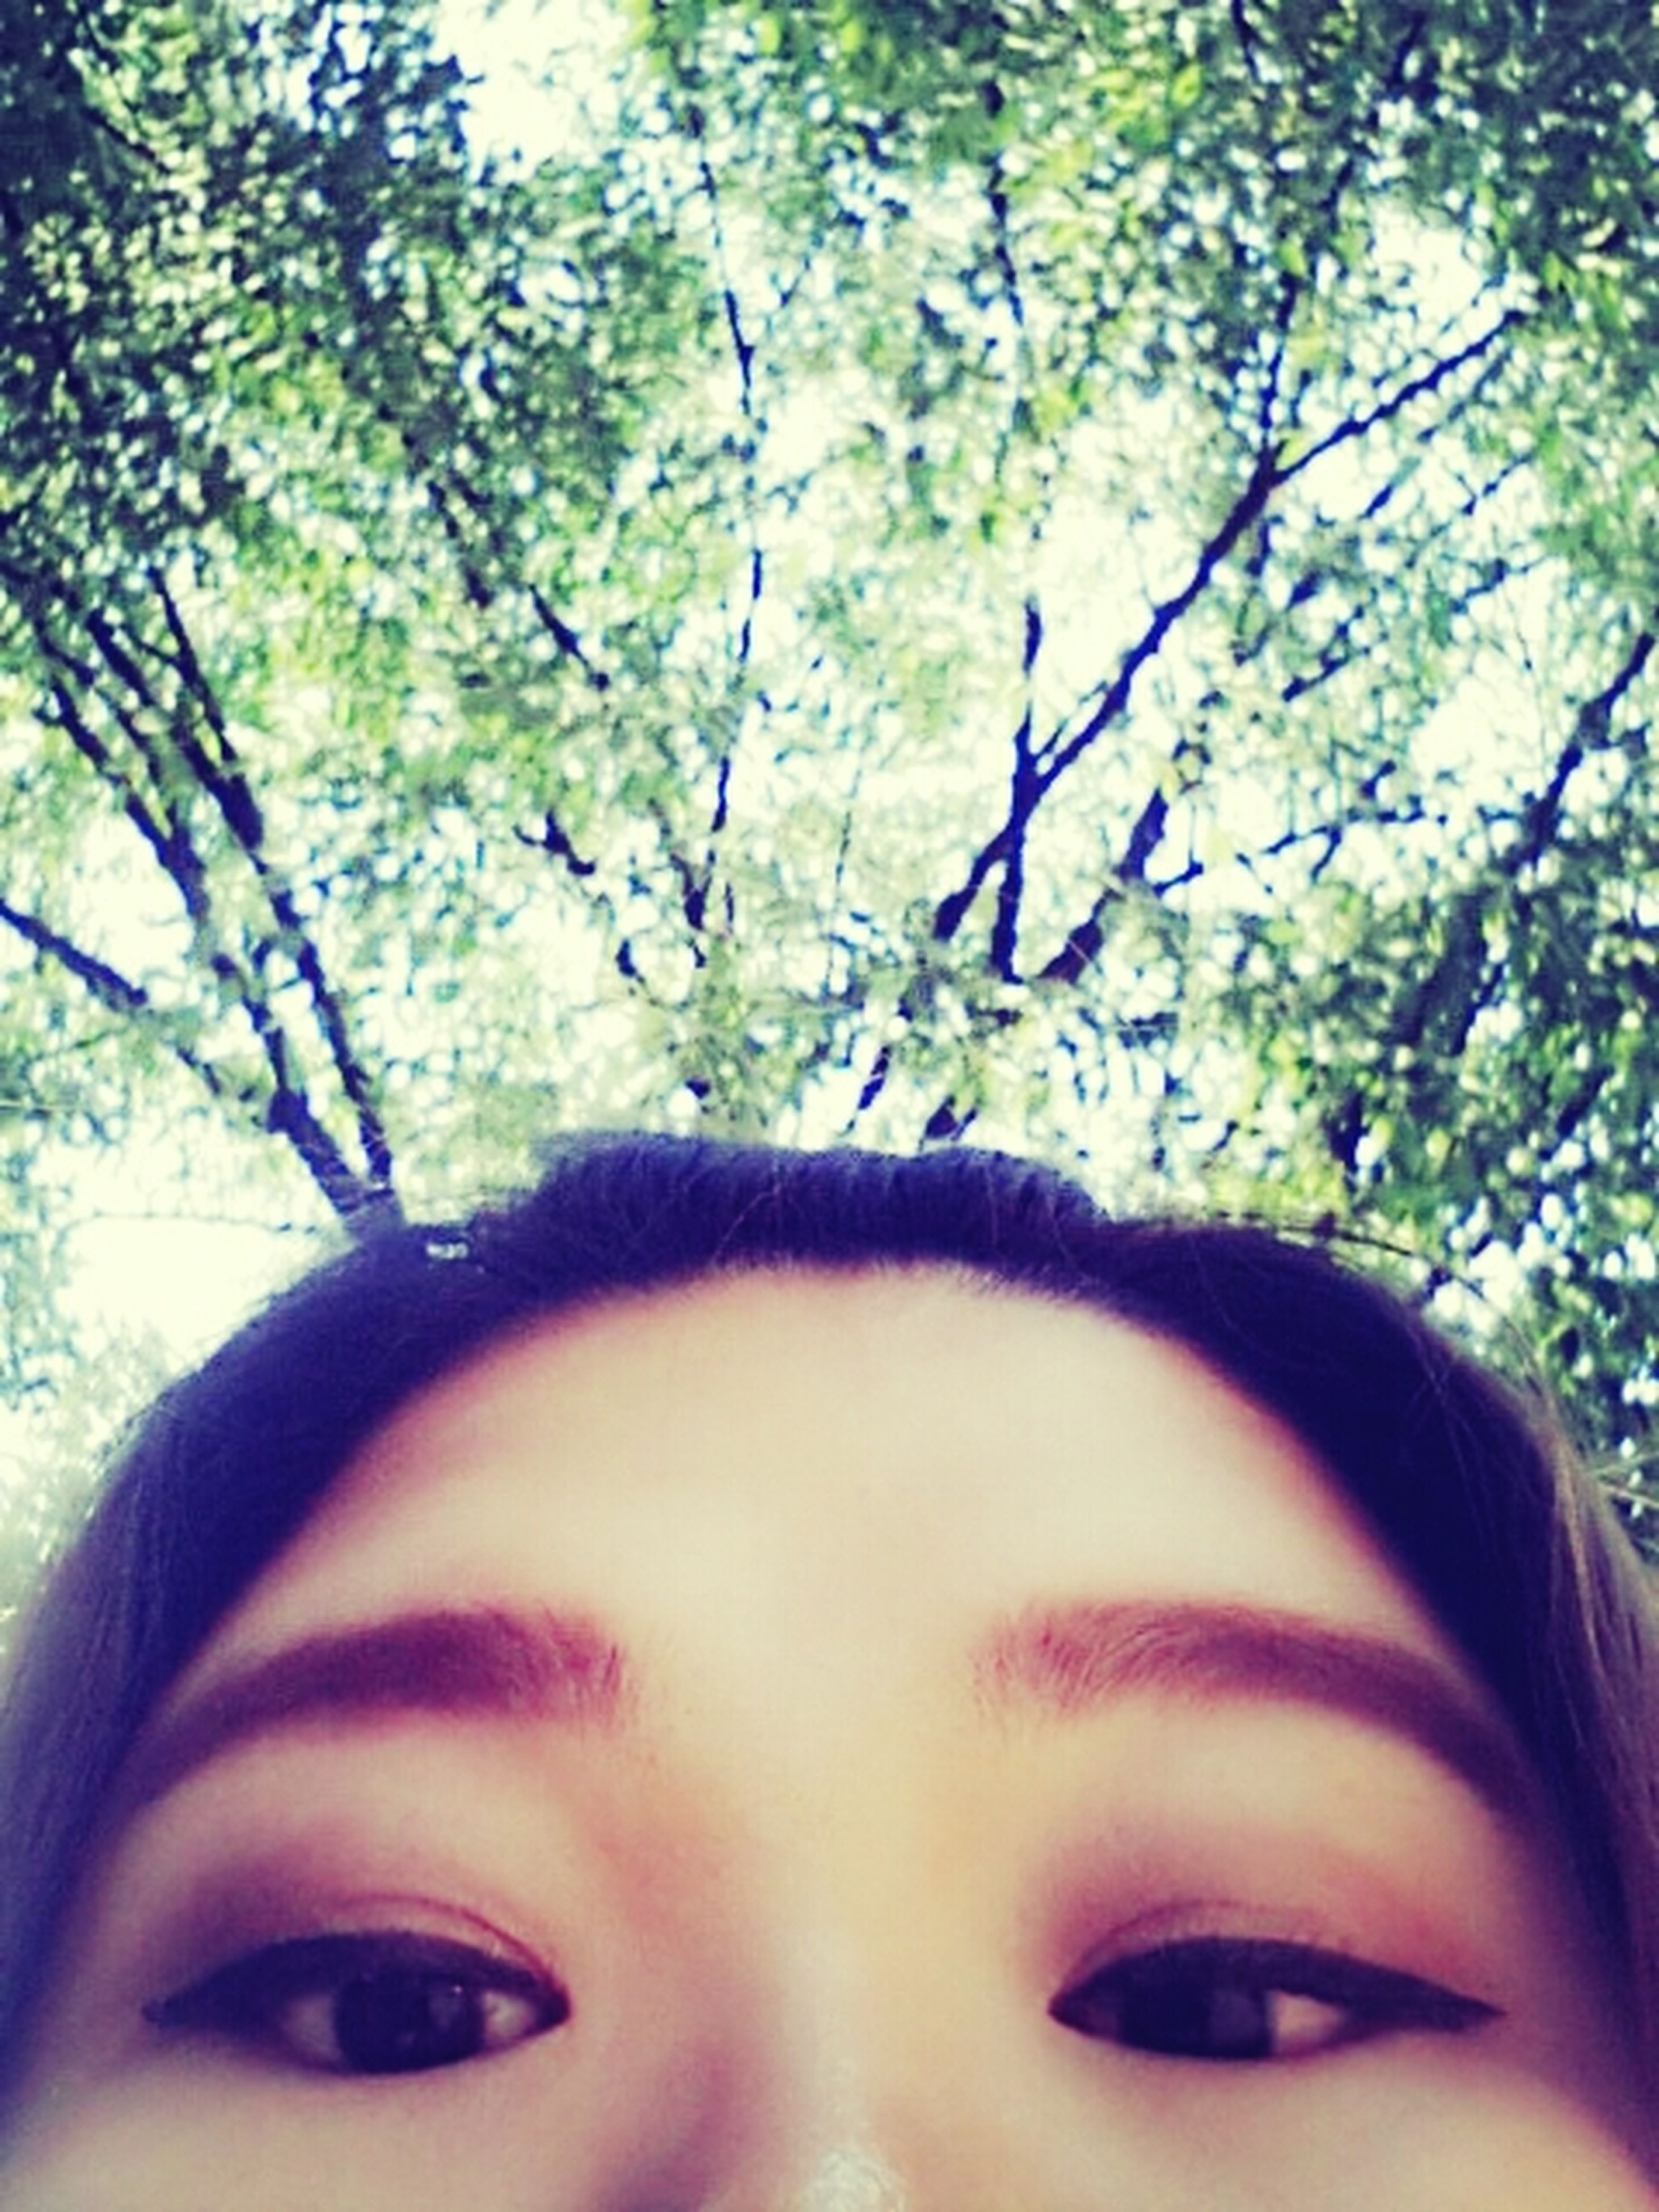 headshot, tree, lifestyles, young adult, leisure activity, person, looking at camera, portrait, close-up, human face, young women, front view, head and shoulders, focus on foreground, day, branch, smiling